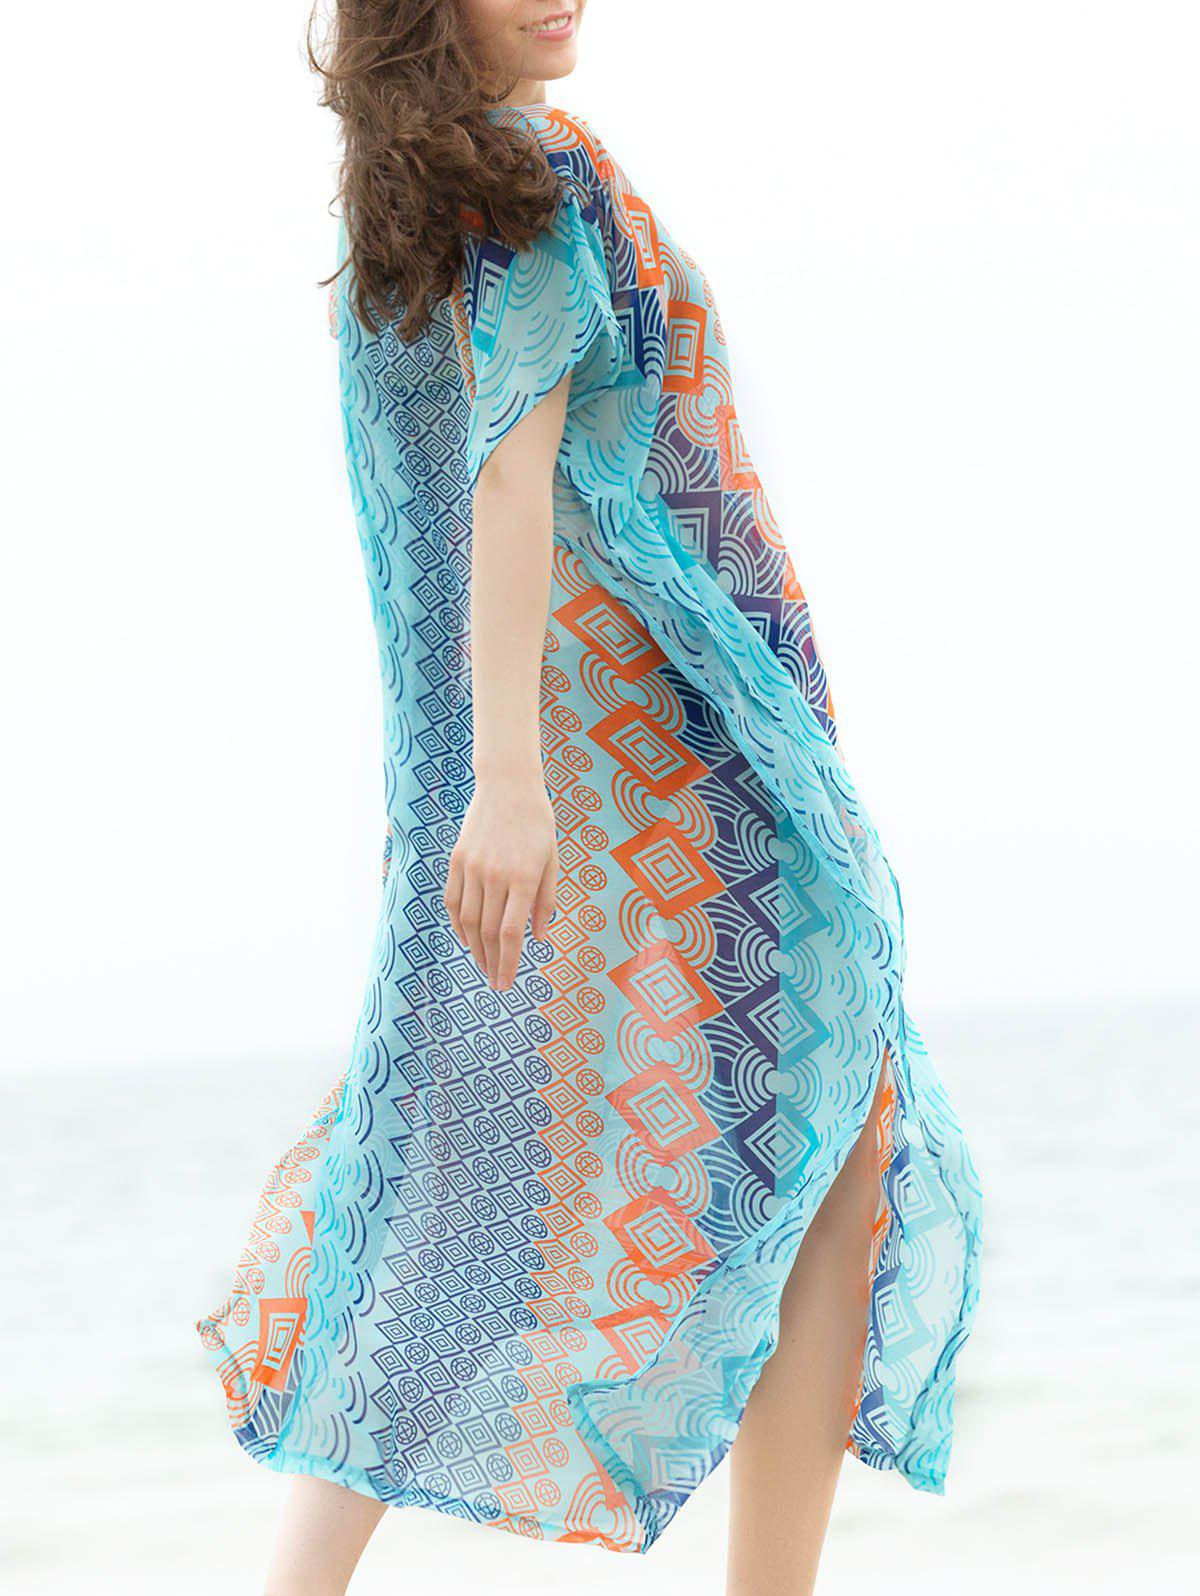 Bohemian Women's V-Neck Short Sleeve Geometrical Cover-Up Dress - BLUE ONE SIZE(FIT SIZE XS TO M)